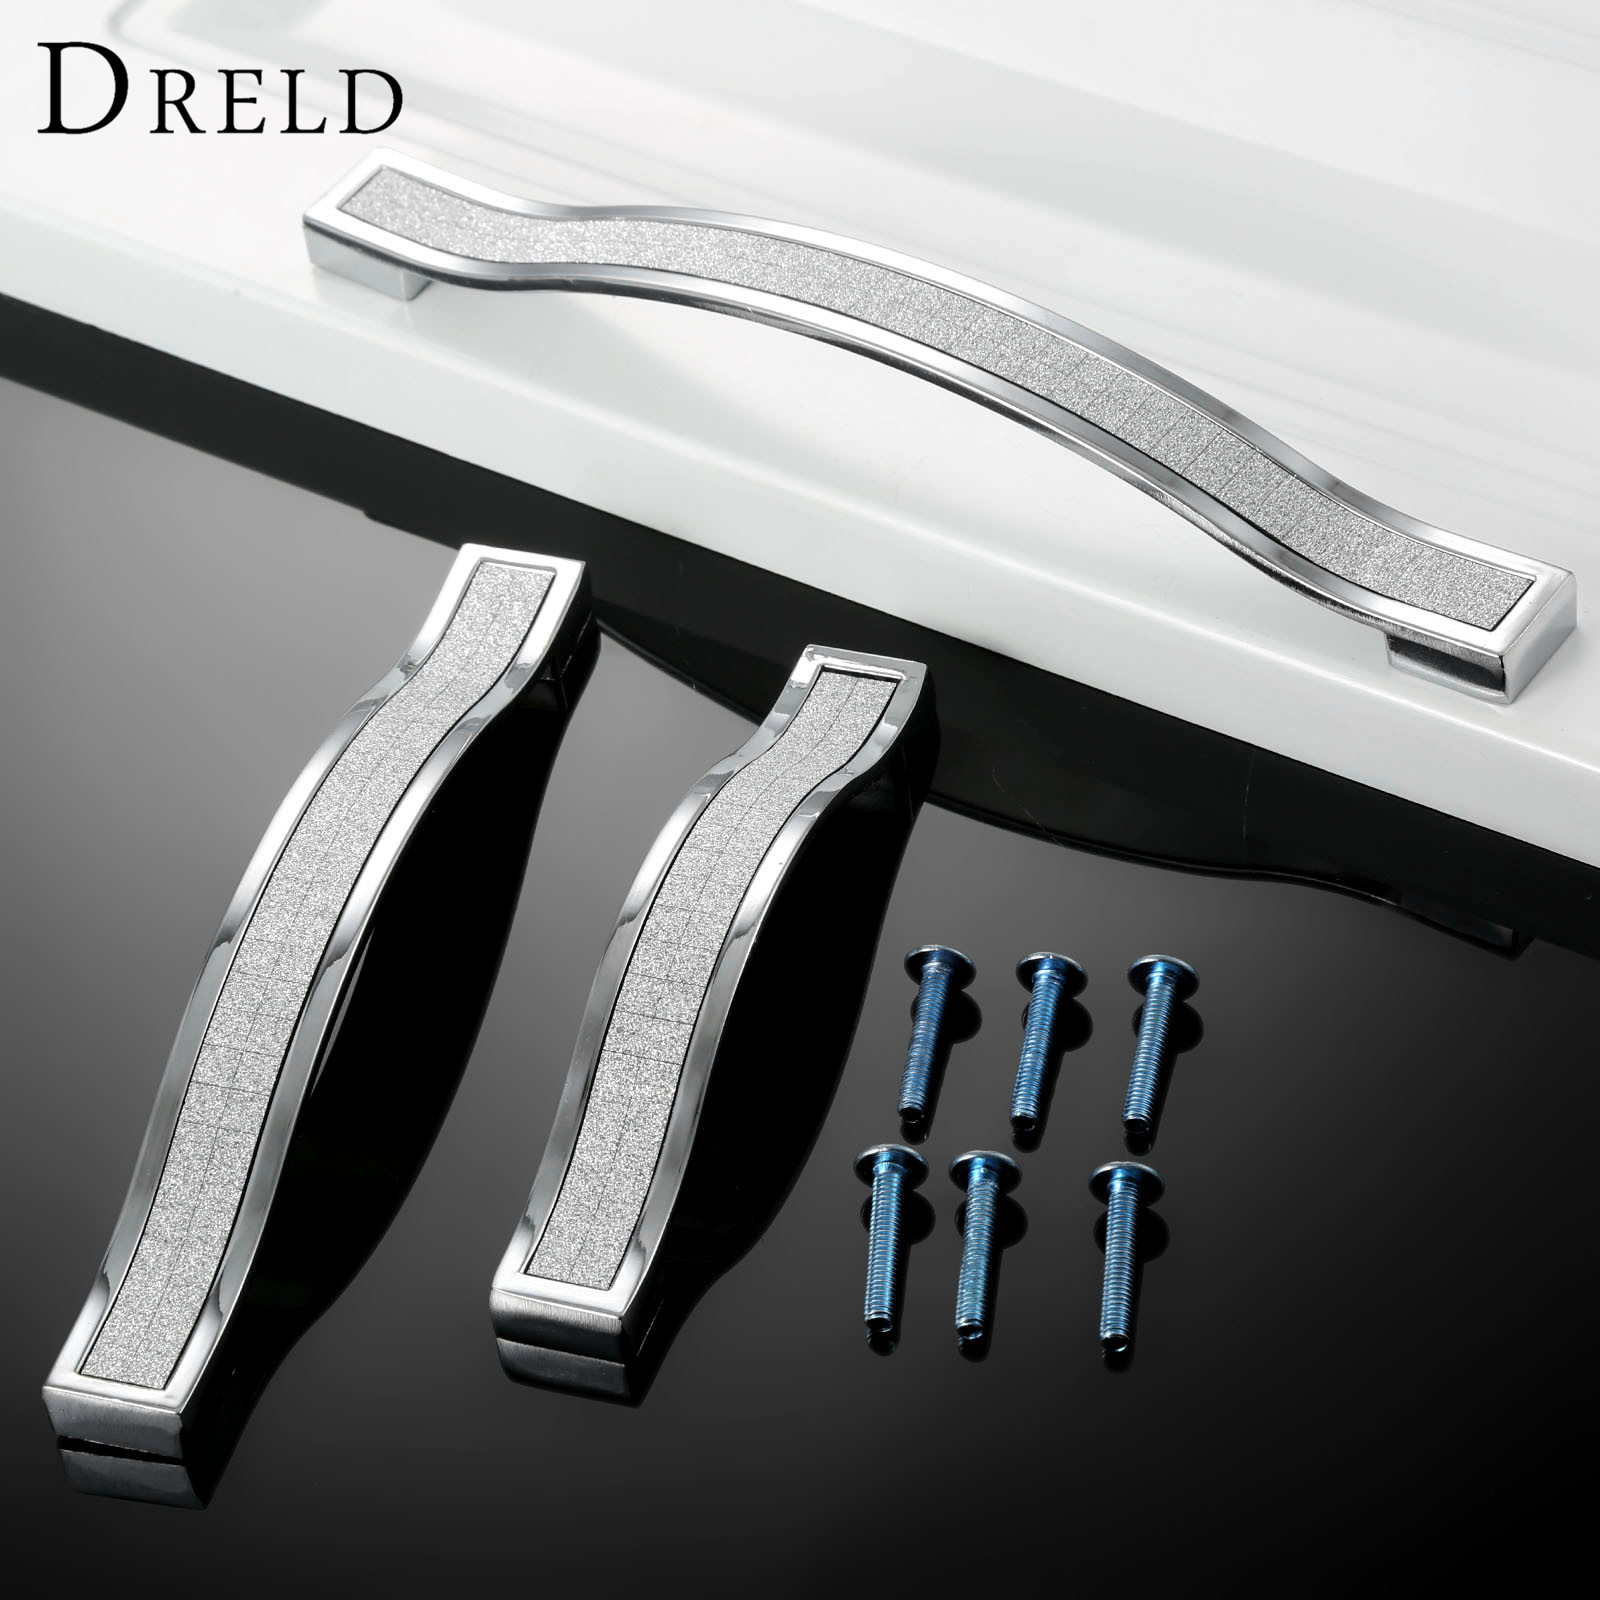 DRELD 96/128/160mm Furniture Handle Modern Cabinet Knobs and Handles Door Cupboard Drawer Kitchen Pull Handle Furniture Hardware hot brown handle single hole leather door handles cabinet cupboard drawer pull knobs furniture kitchen accessories 96 160 192mm